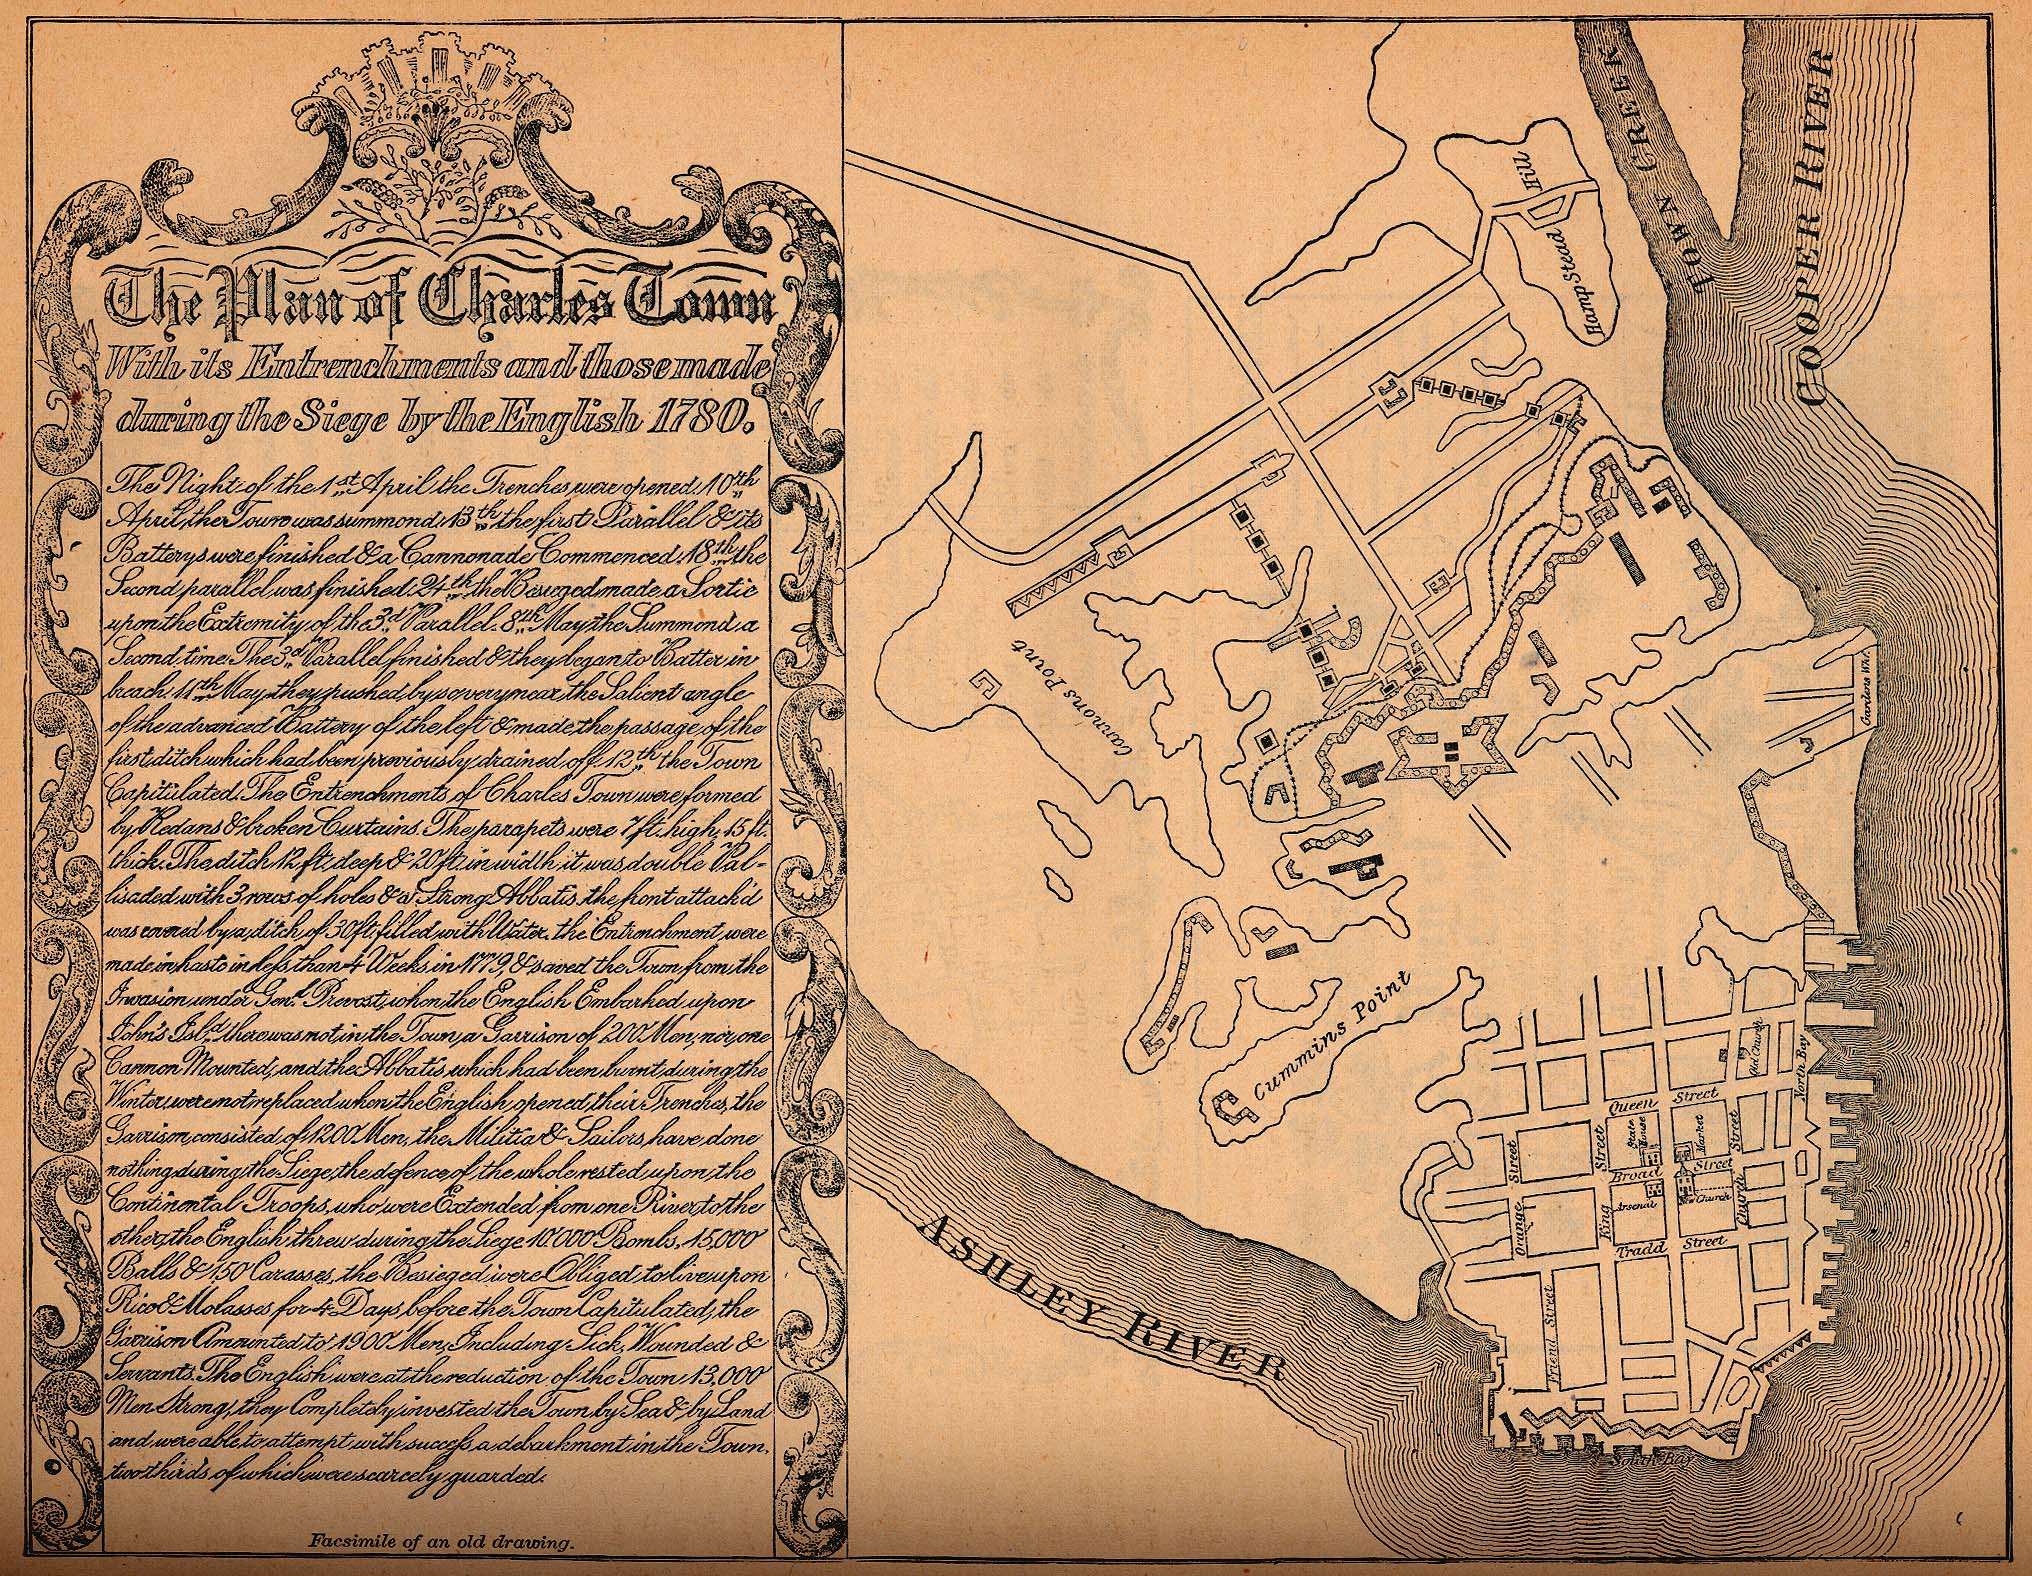 South Carolina - Charles Town in 1780 Map